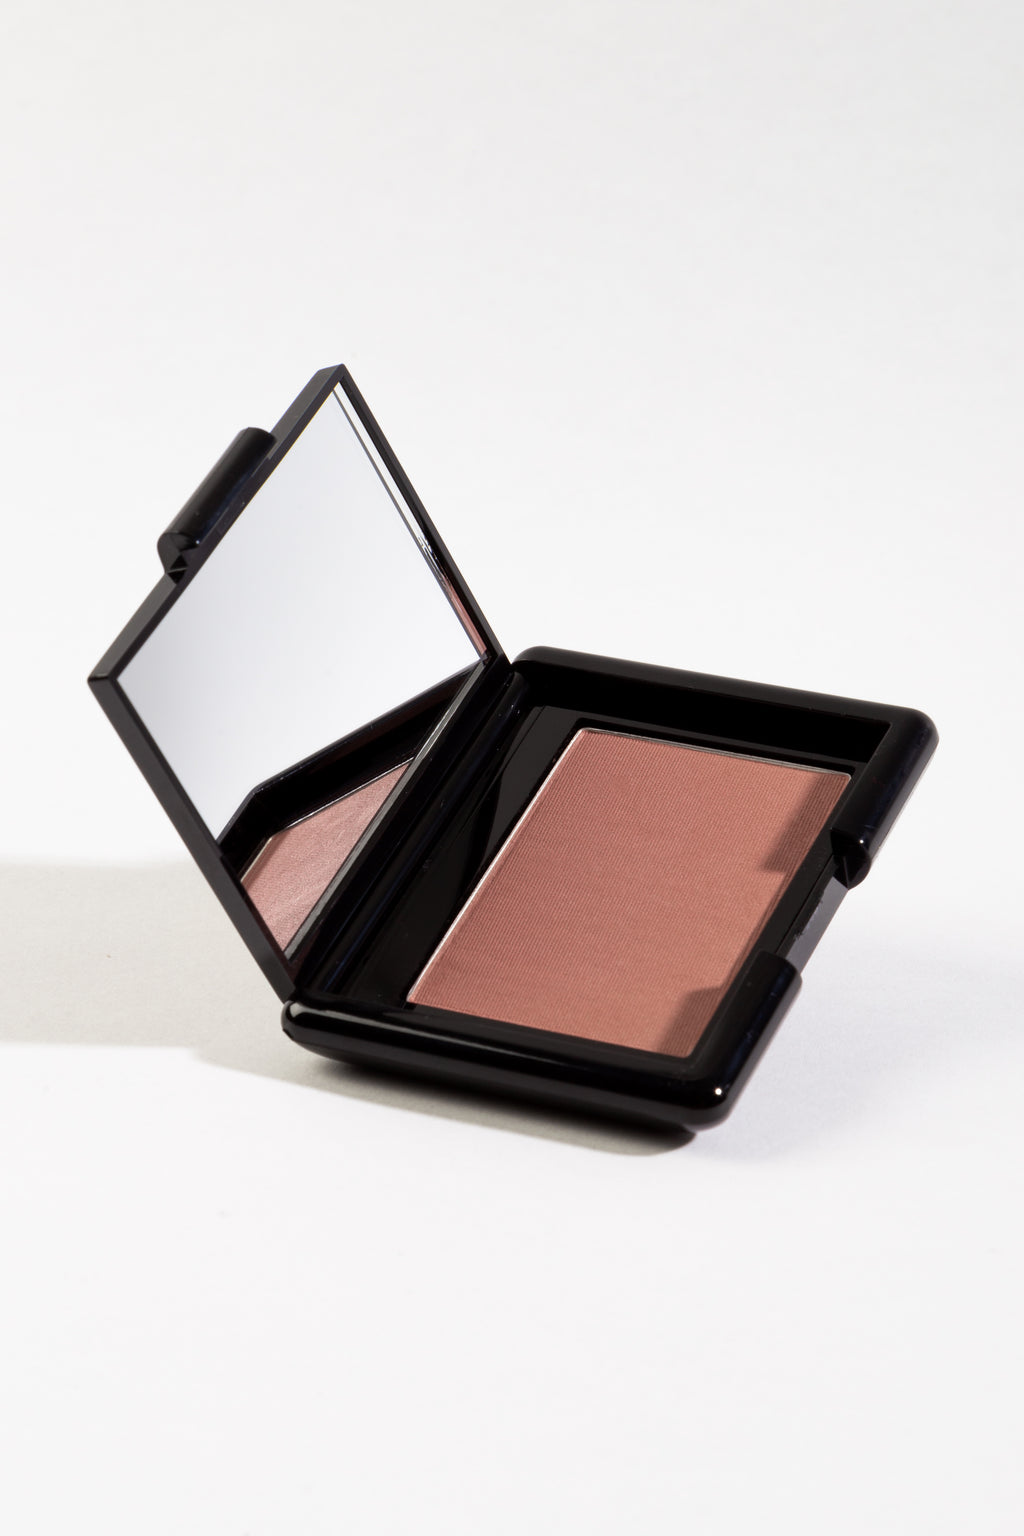 Blush Compact in Polly